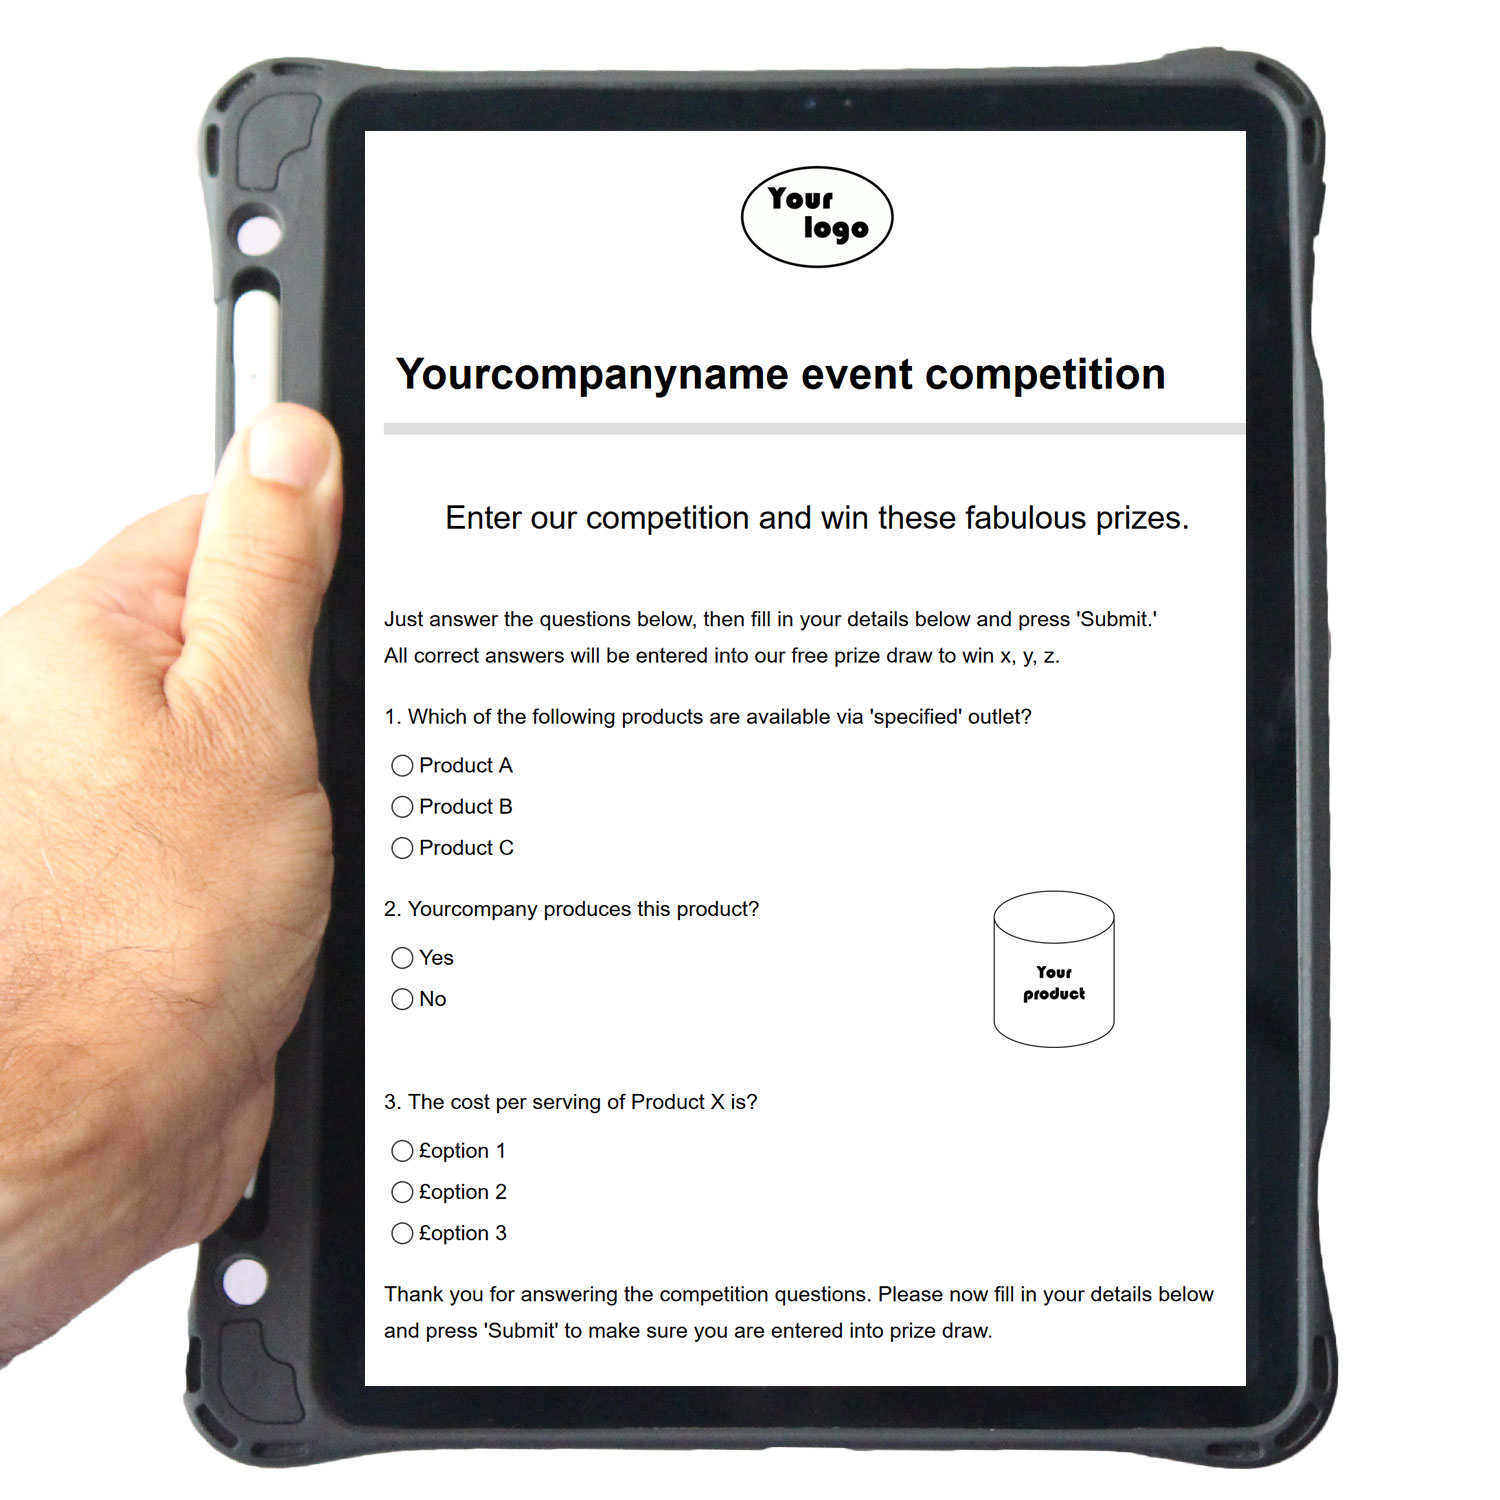 ipad-held-1500-square-cutout-competition.jpg